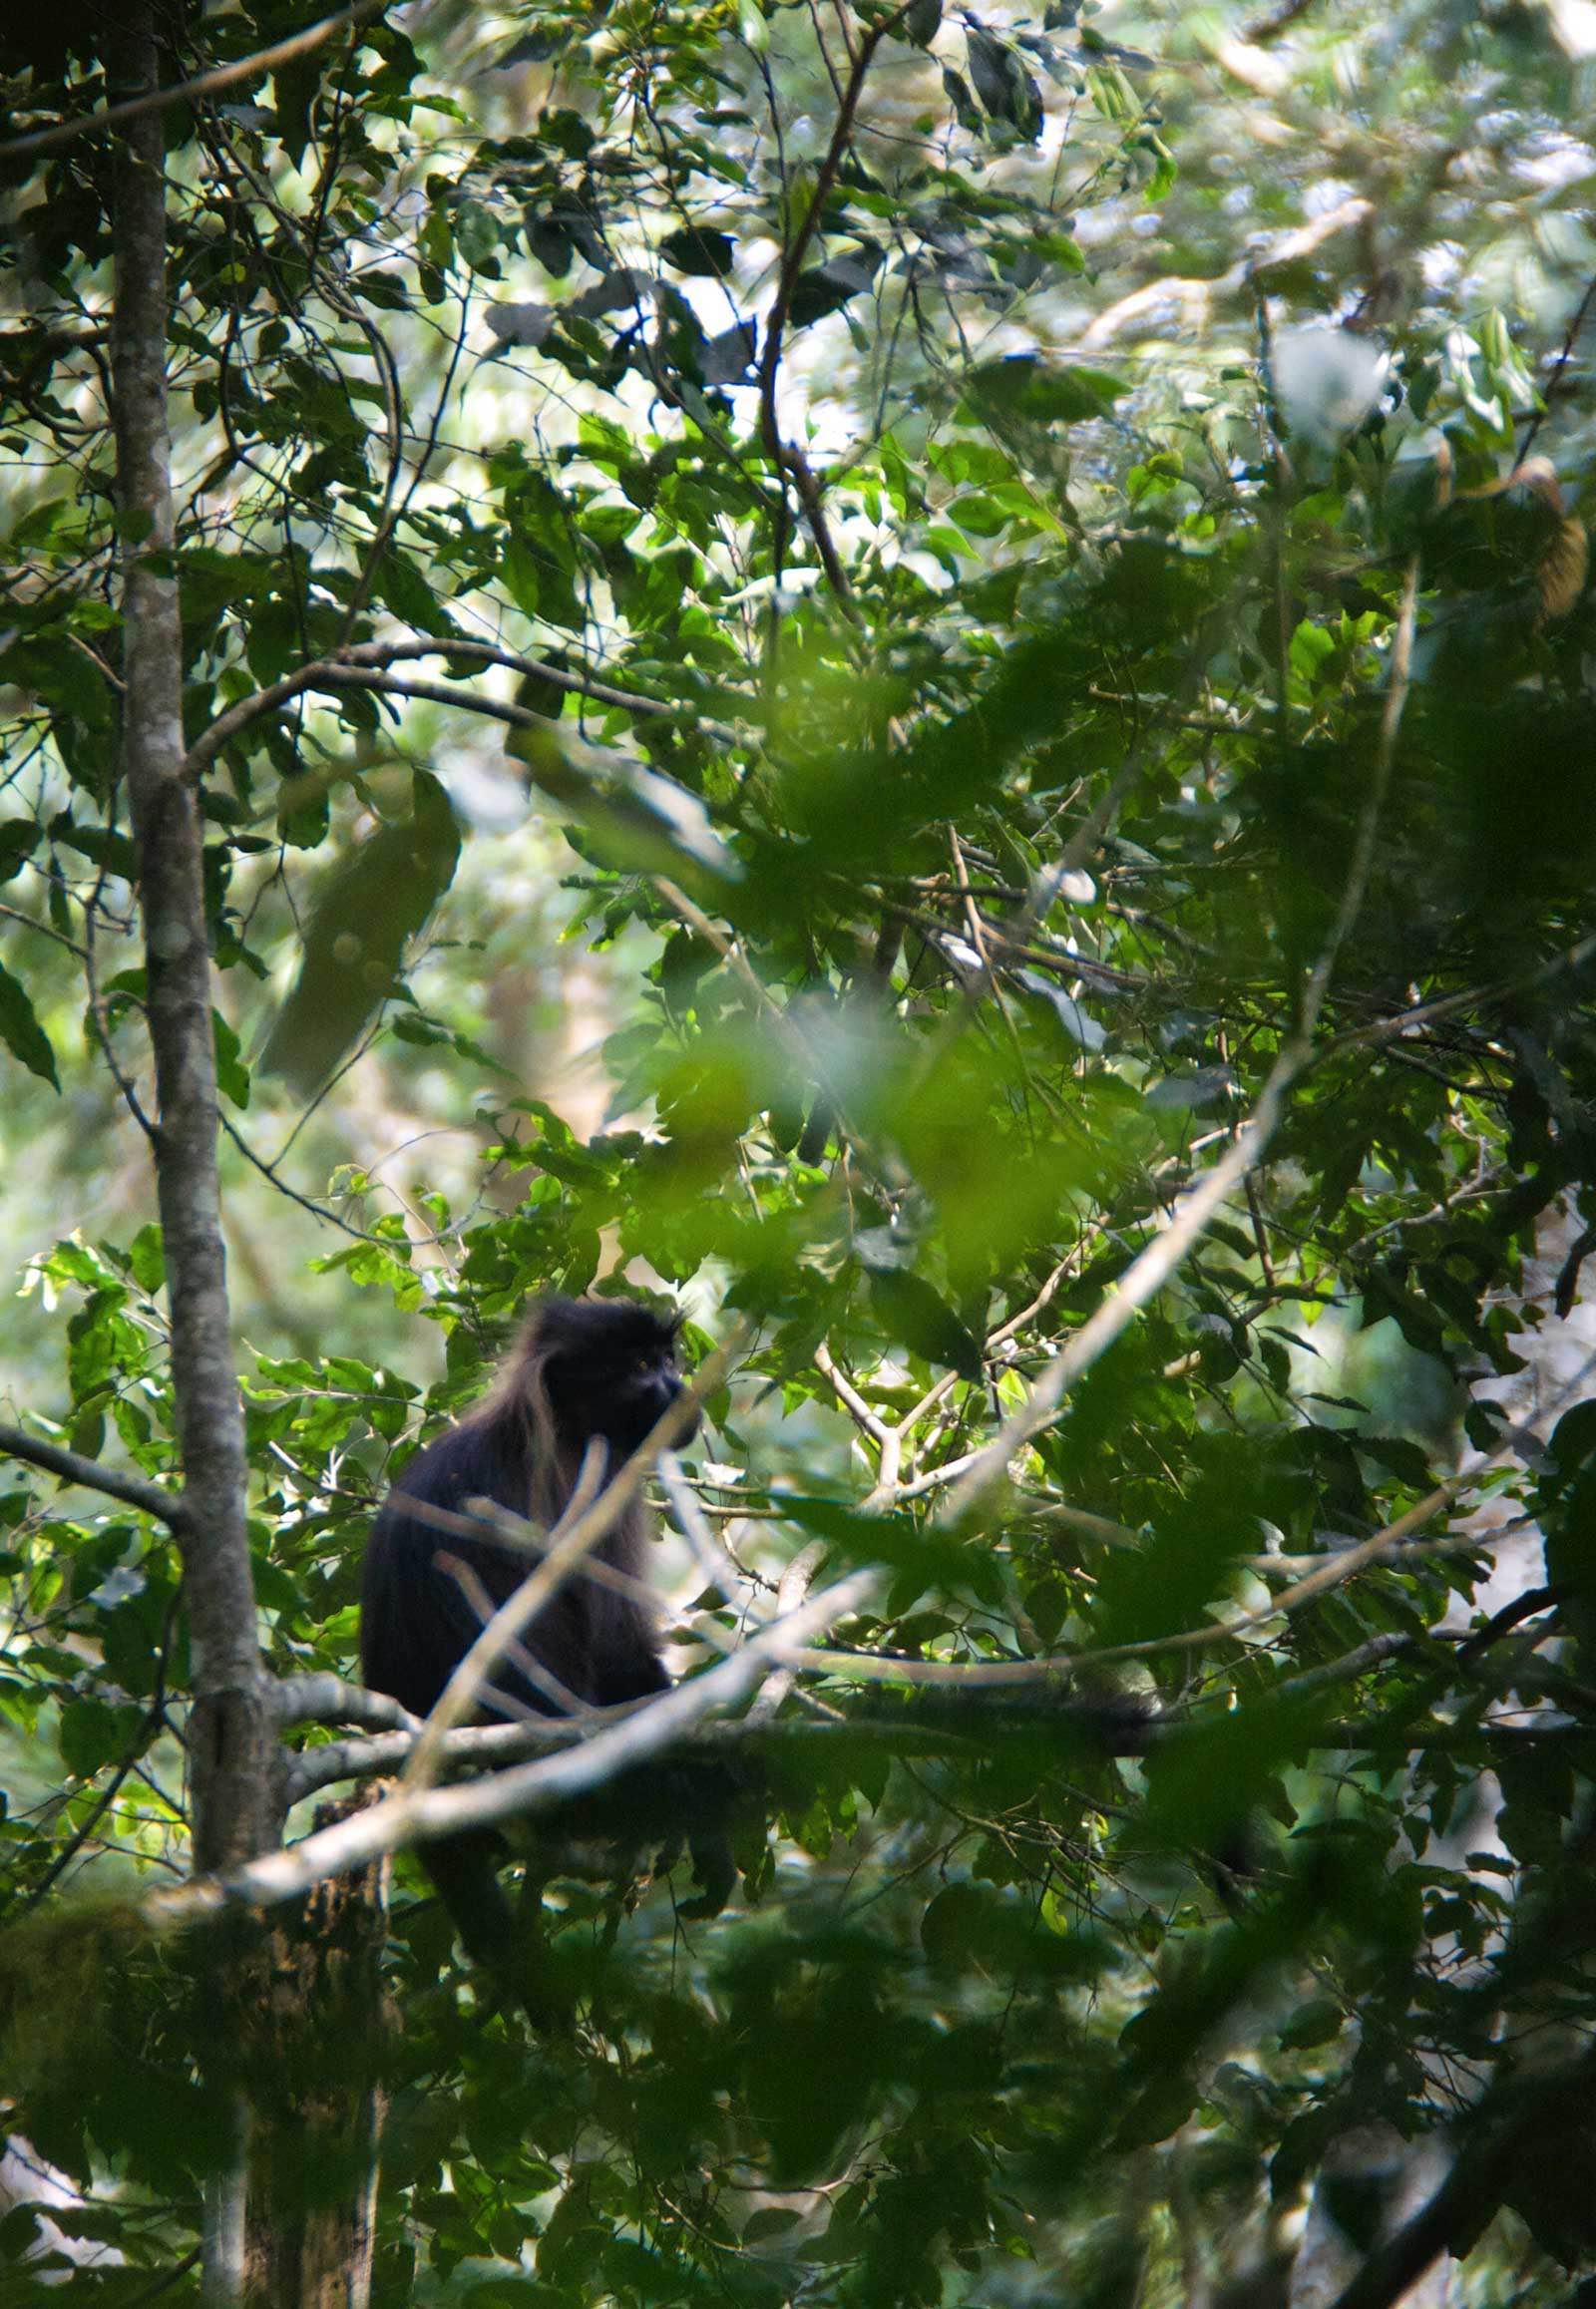 A grey-cheeked mangabey spotted in Kibale Forest, sharing the environment with chimpanzees